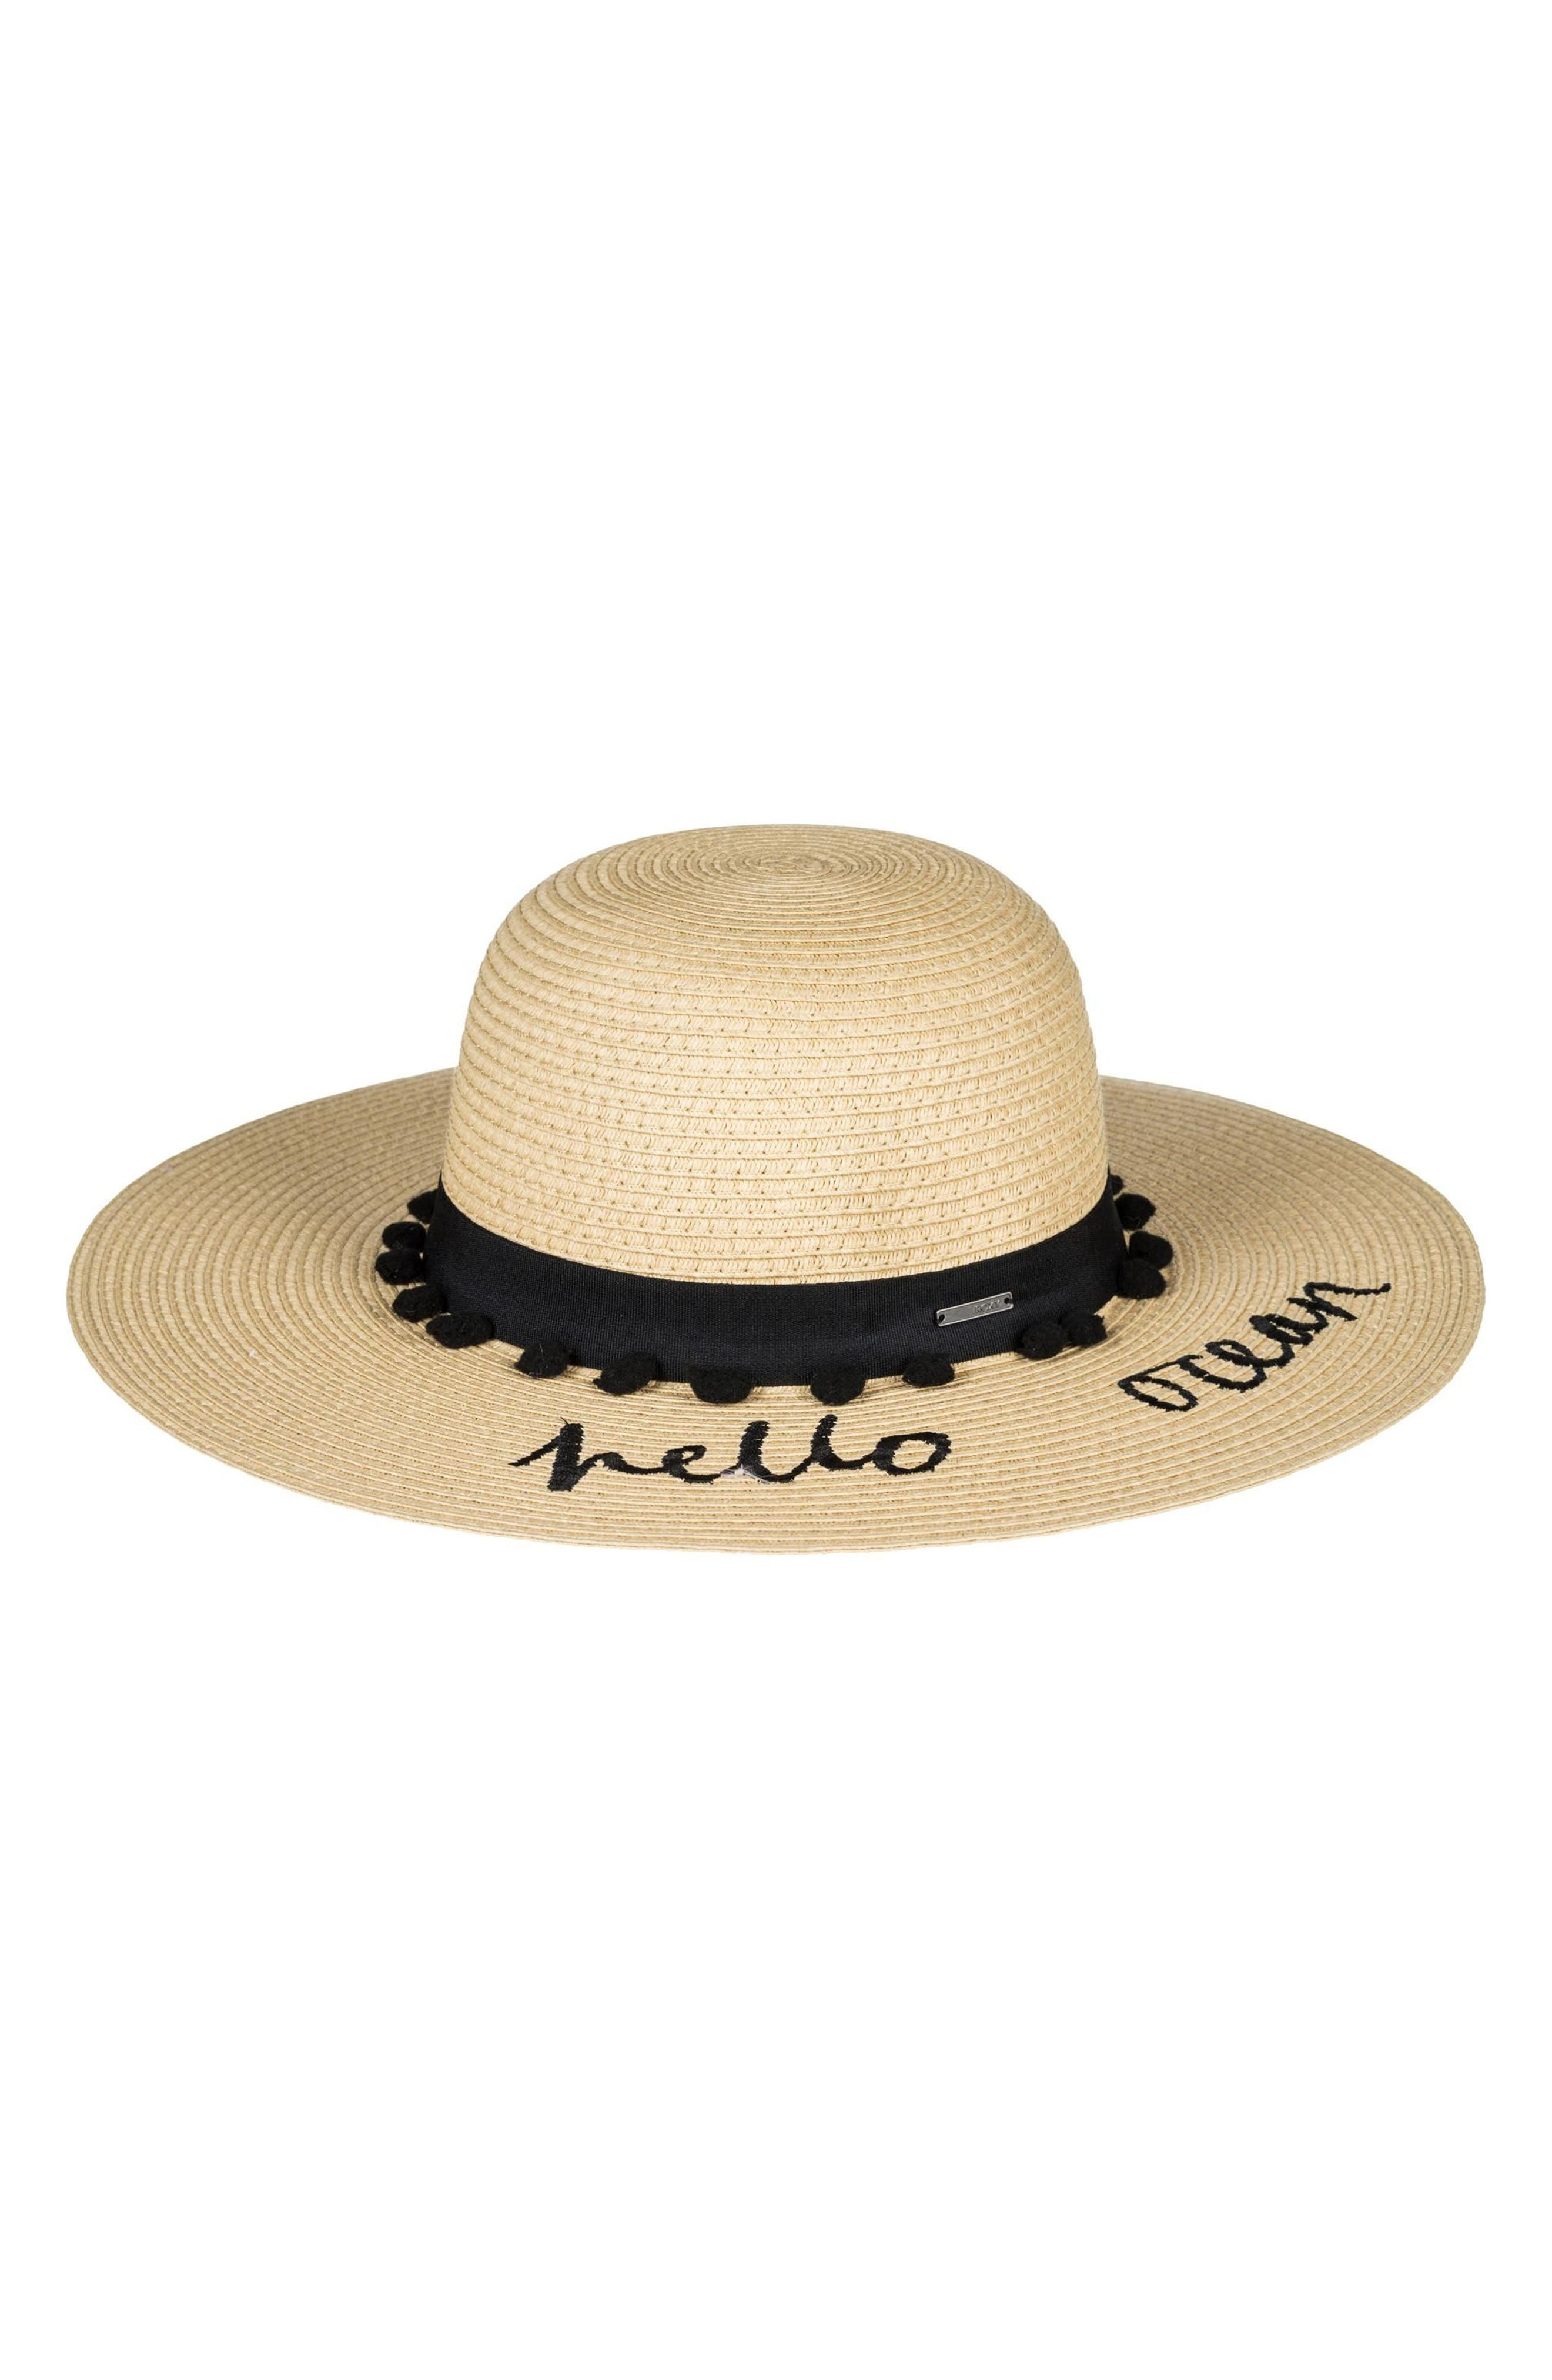 Roxy Pio La La Embroidered Straw Hat